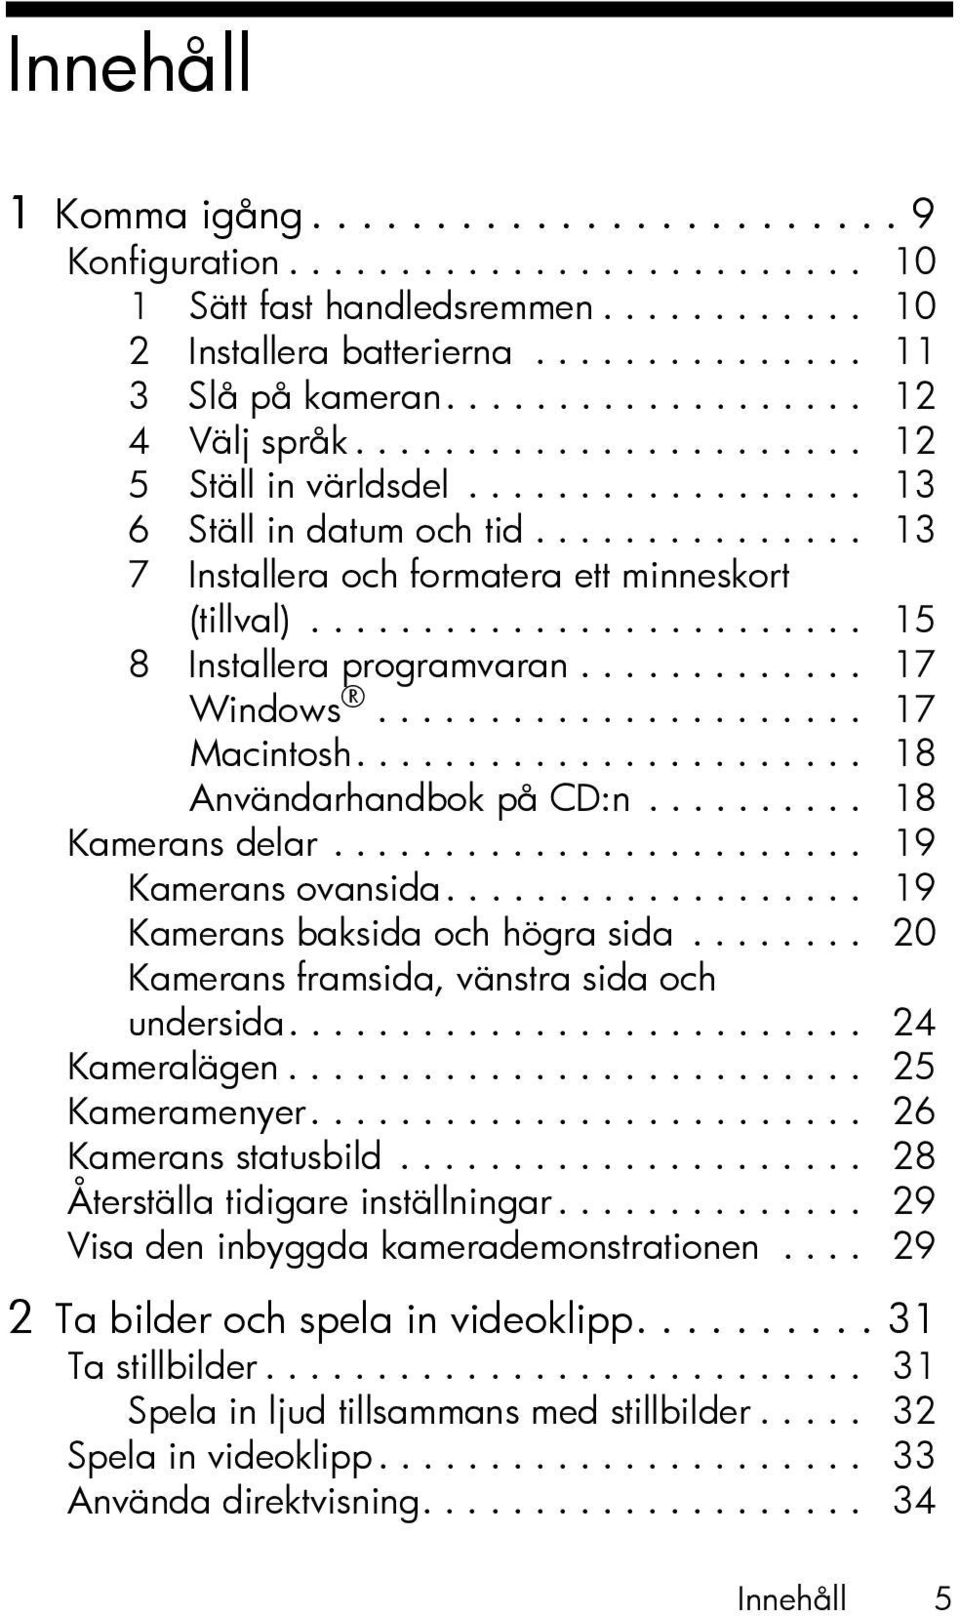 ........................ 15 8 Installera programvaran............. 17 Windows...................... 17 Macintosh....................... 18 Användarhandbok på CD:n.......... 18 Kamerans delar.